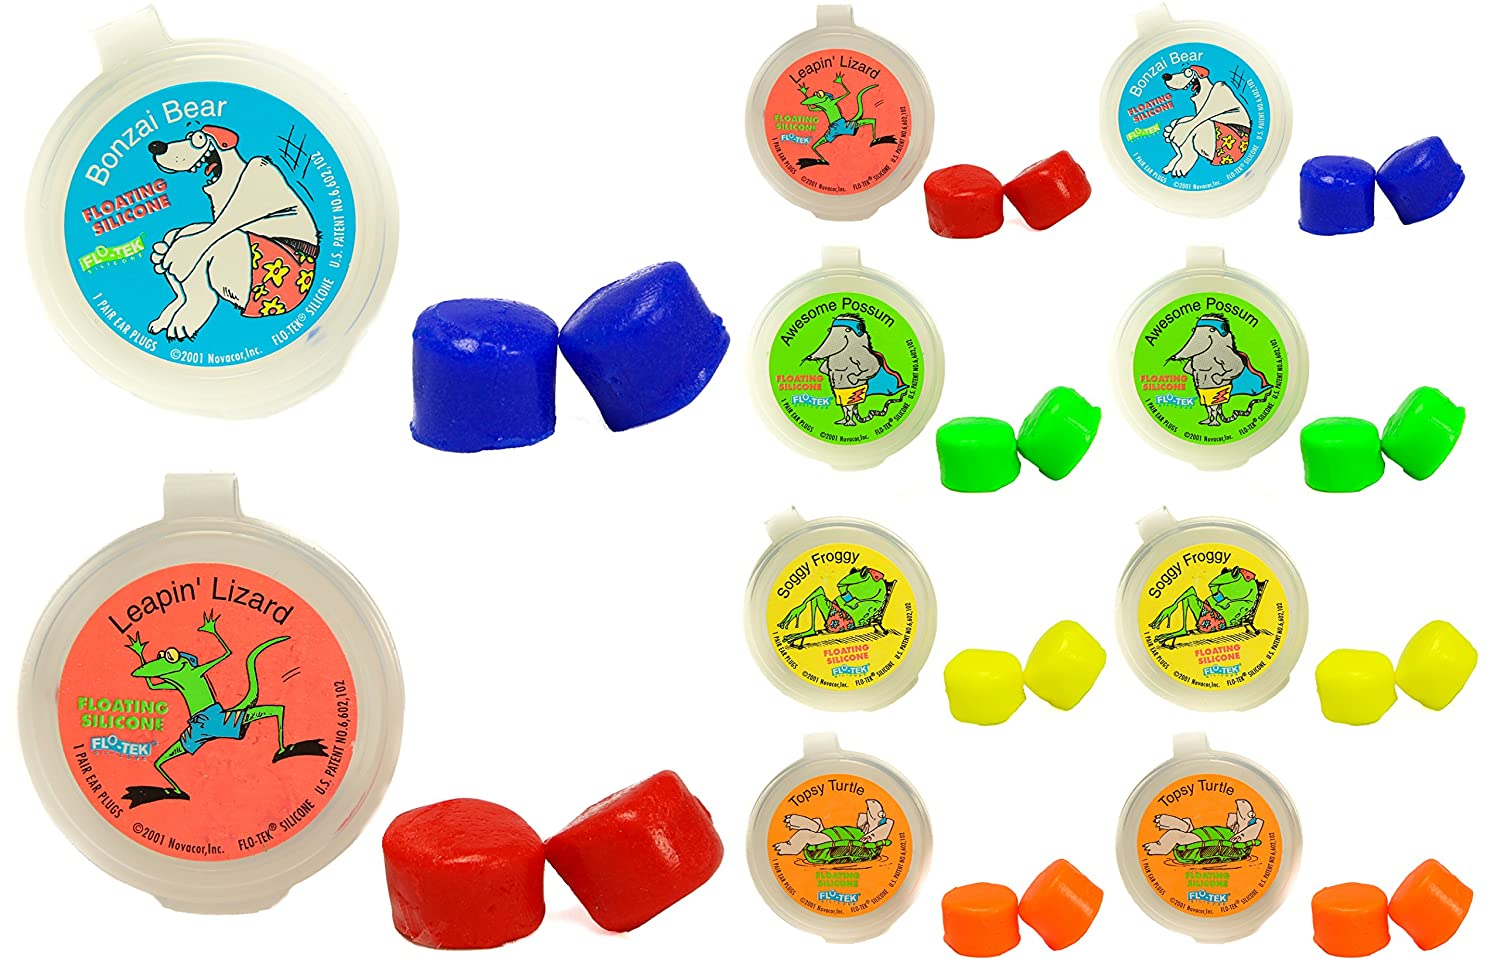 Putty Buddies Floating Earplugs 10 Pair Pack   Soft Silicone Ear Plugs For Swimming & Bathing   Invented By Physician   Keep Water Out   Premium Swimming Earplugs   Doctor Recommended by Putty Buddies